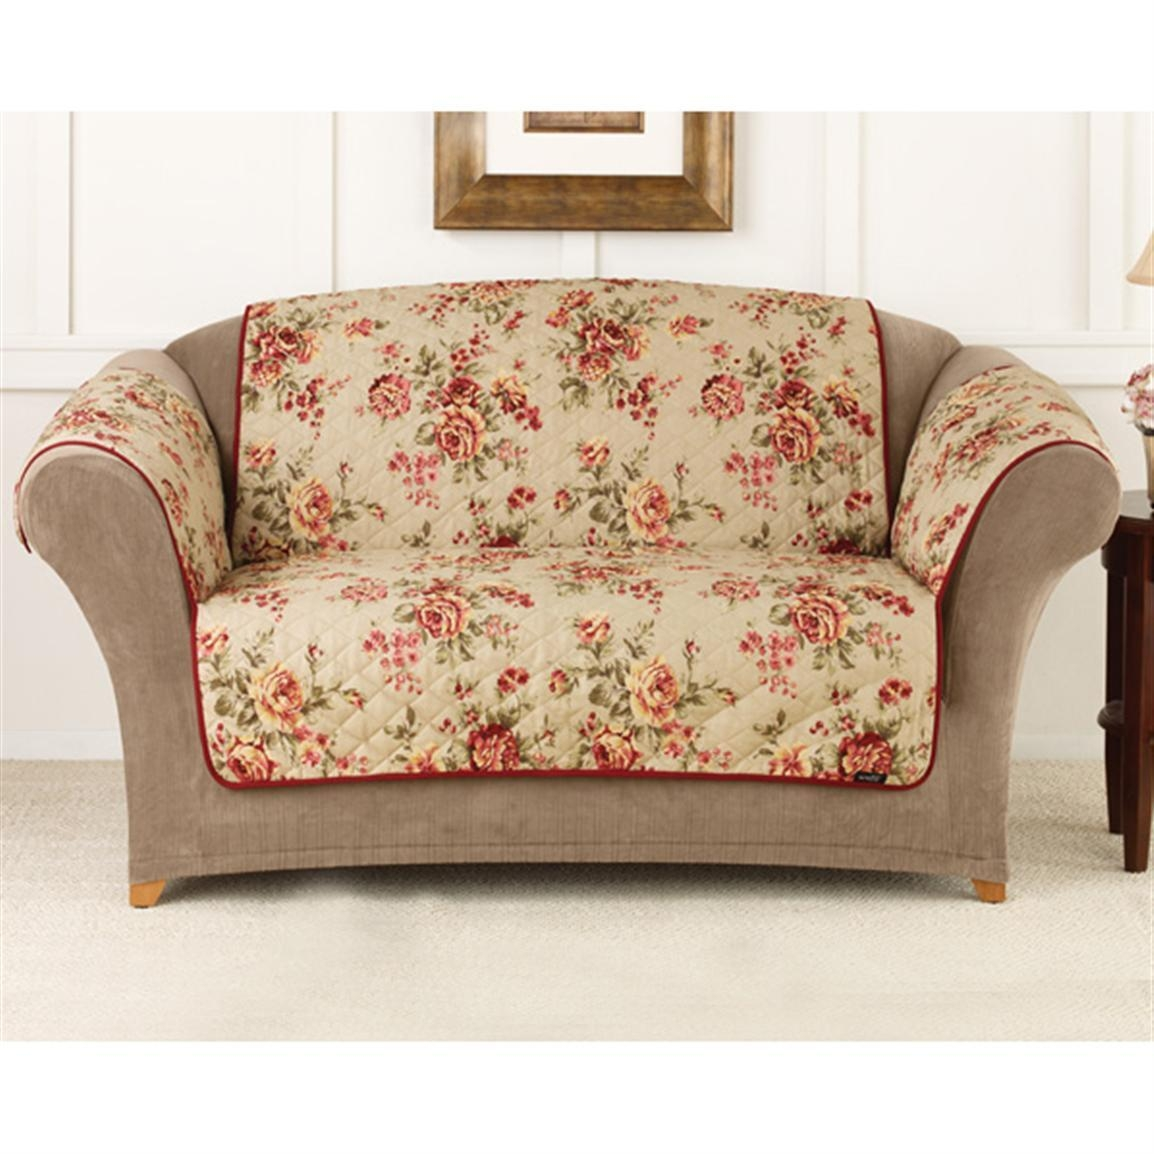 Floral Sofa Slipcovers With Design Image 28823 | Kengire Throughout Floral Sofa Slipcovers (View 5 of 20)